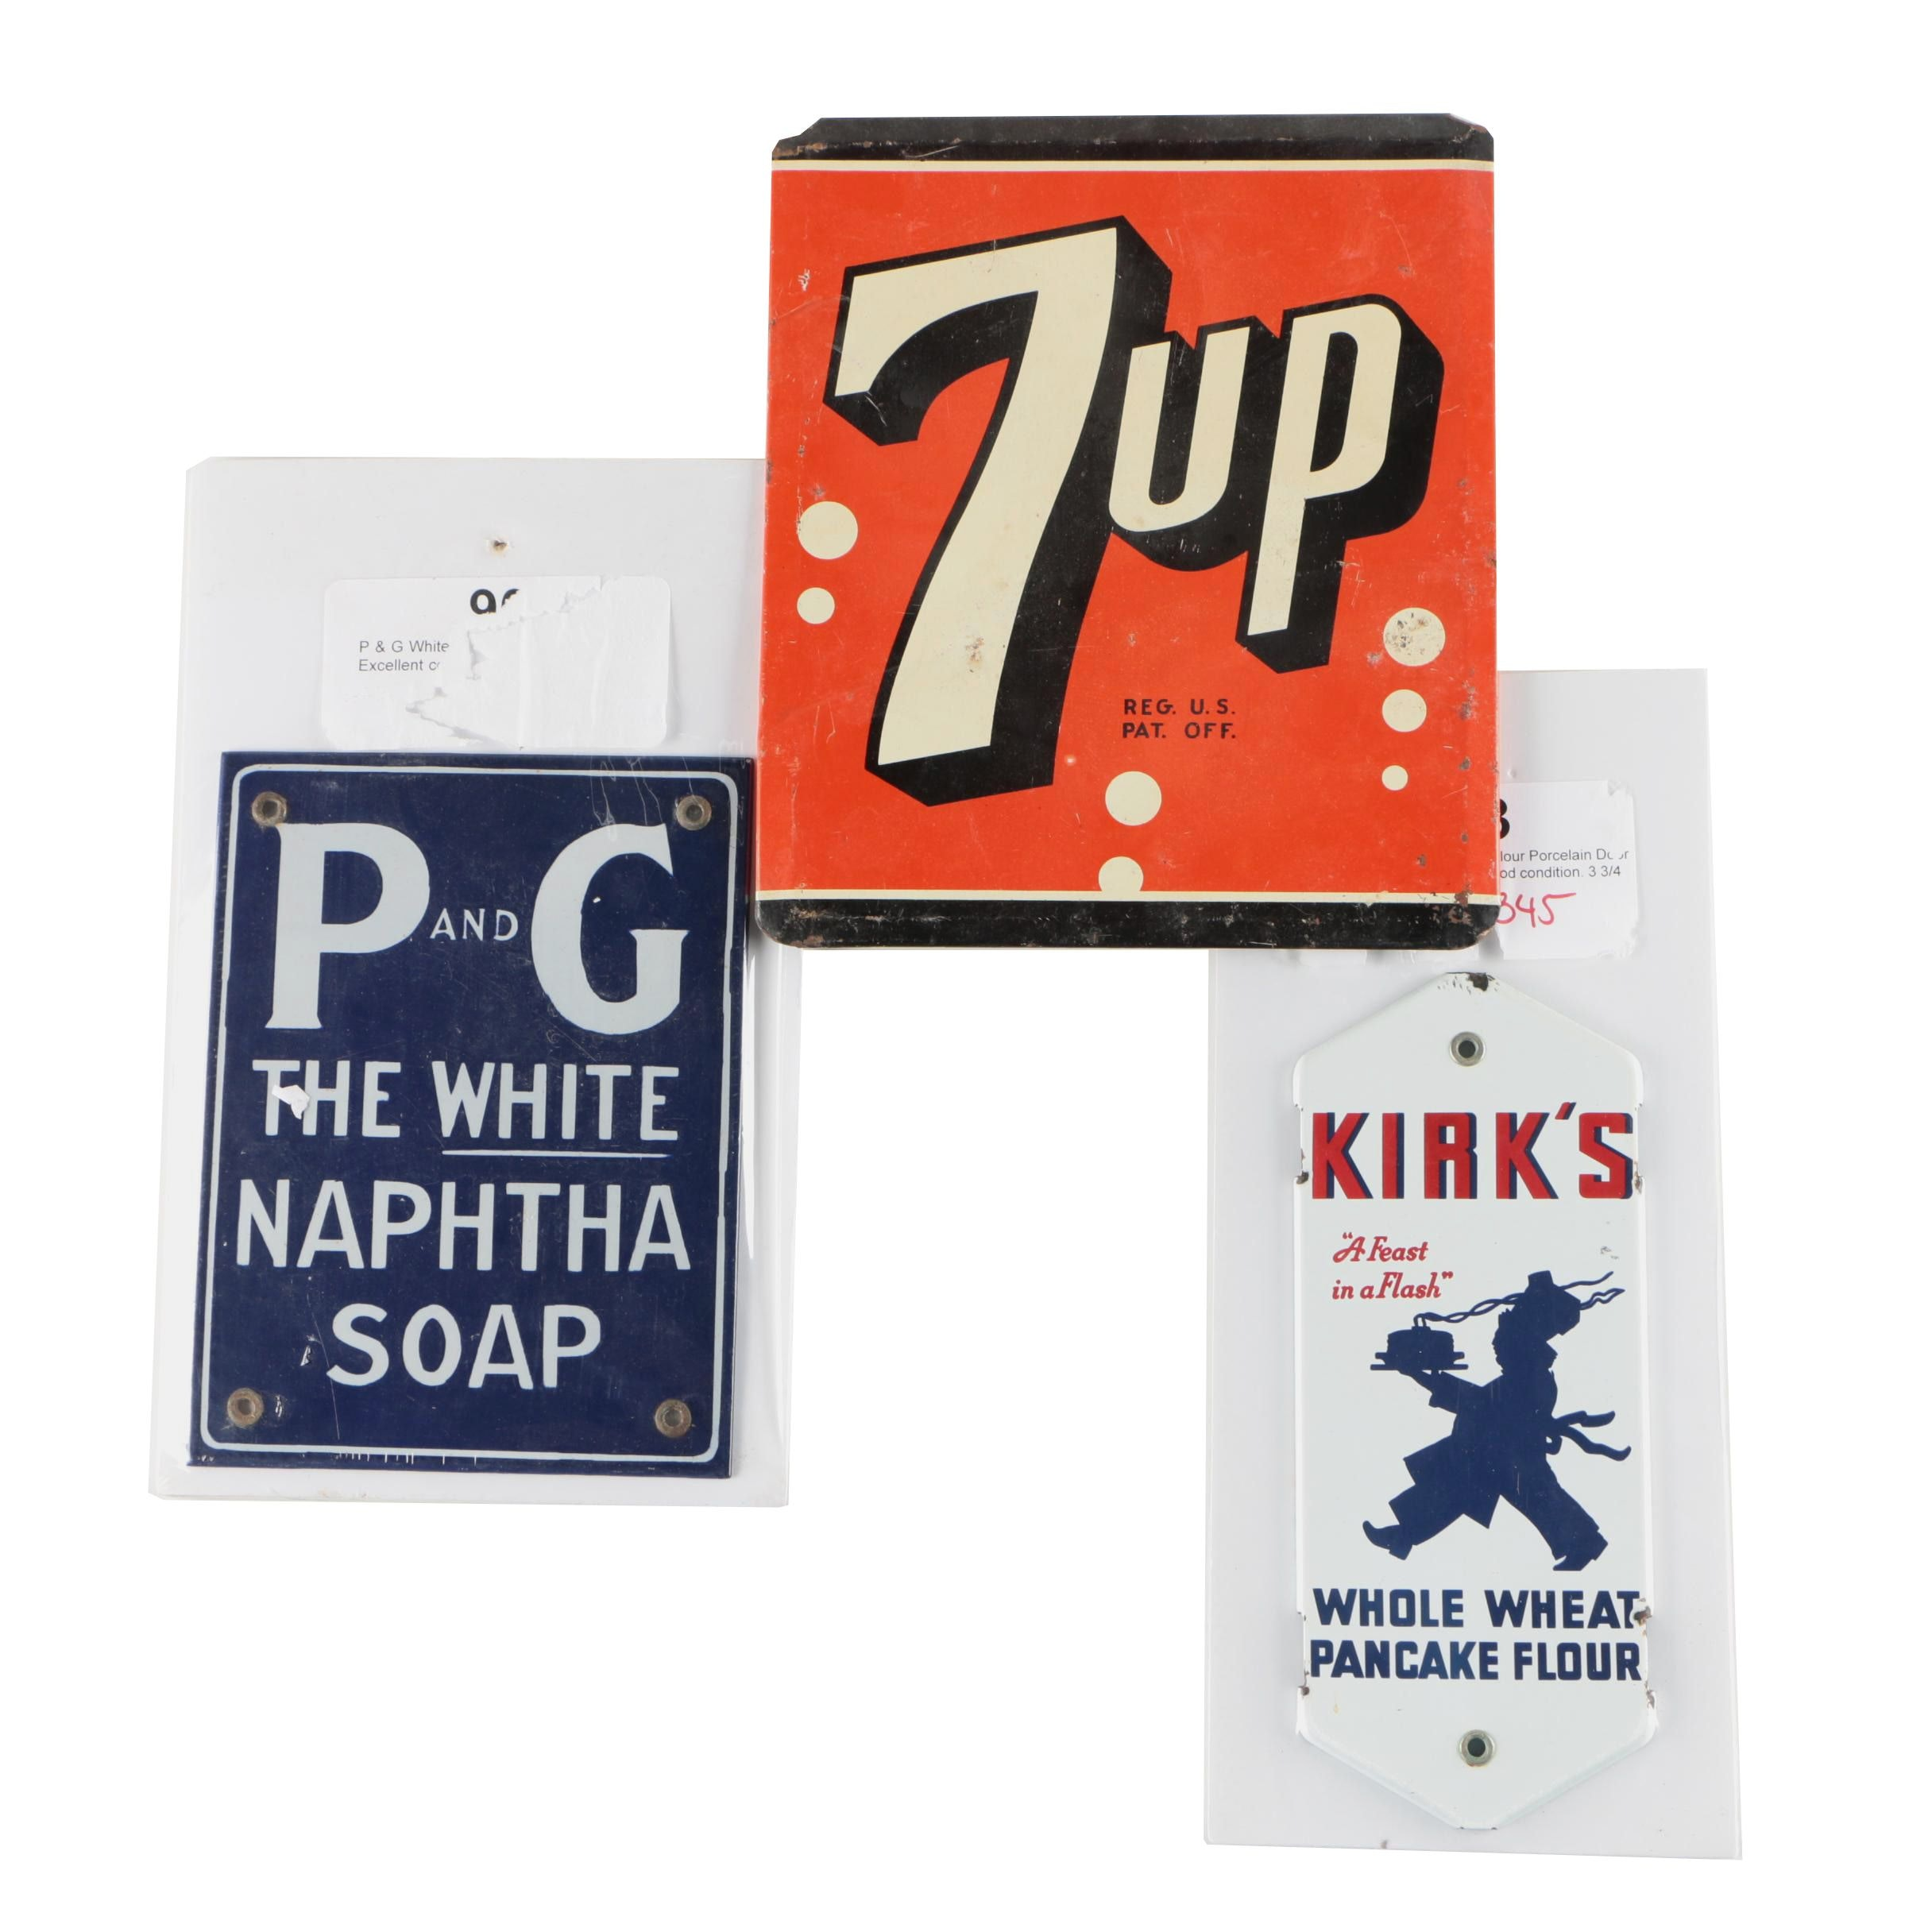 P&G and Kirk's Porcelain Advertisement Plaques with 7 UP Sign, Vintage